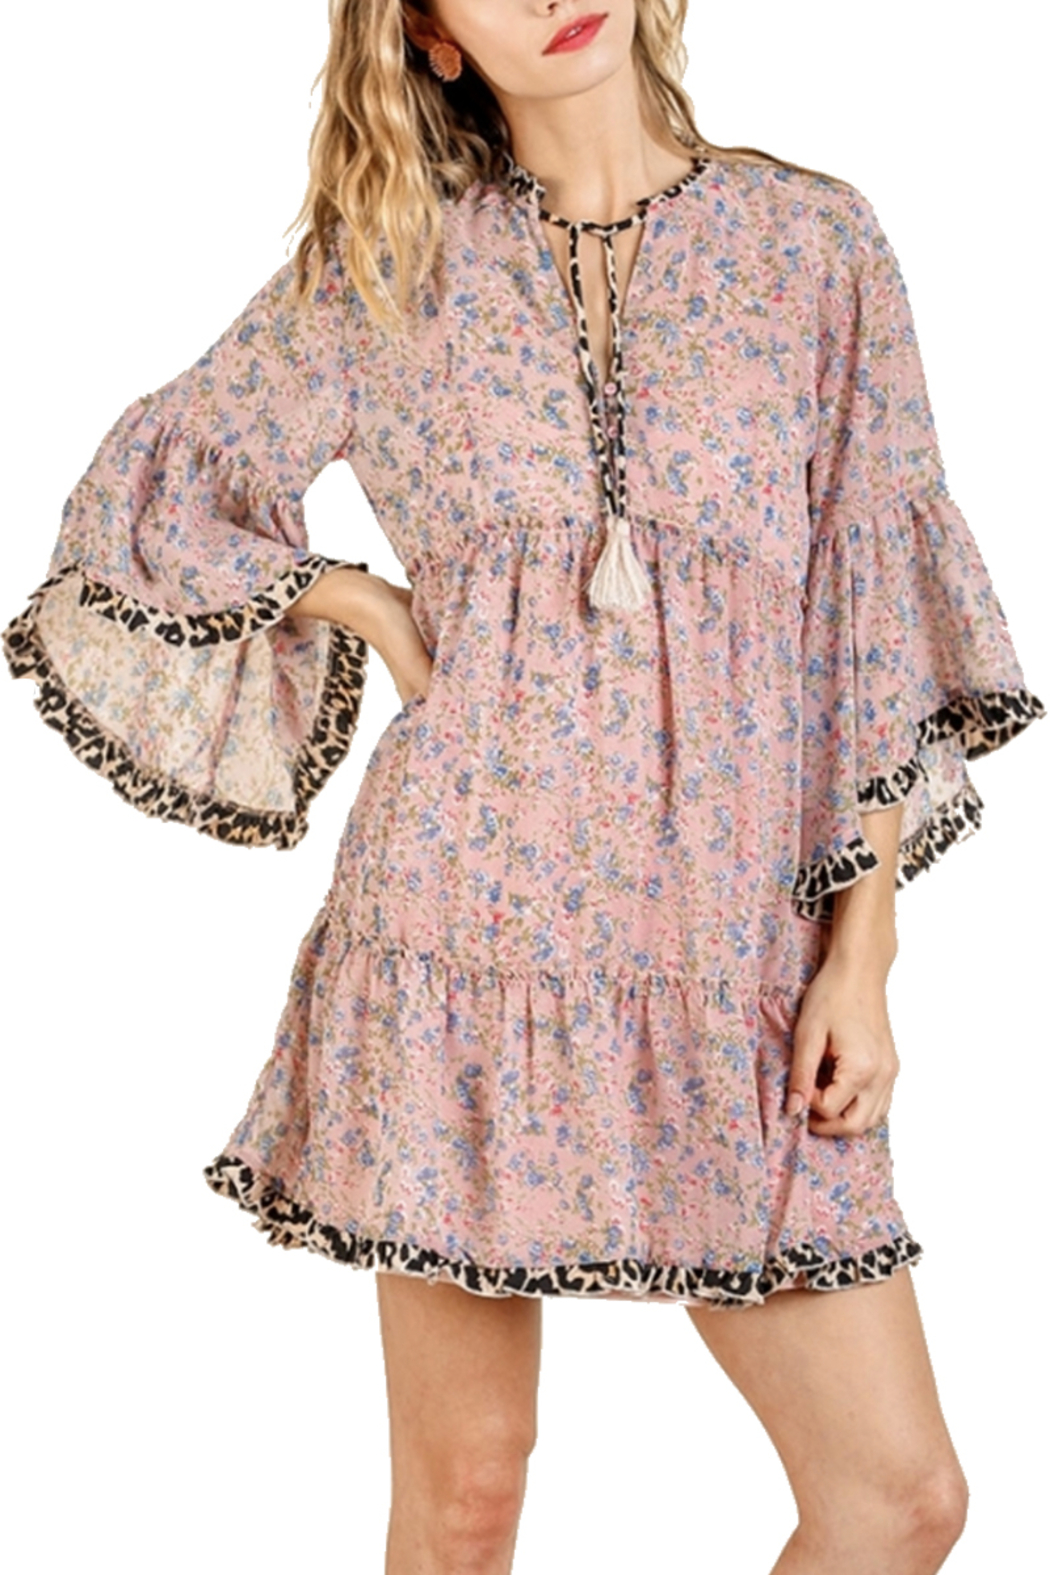 Umgee Dusty Pink Floral Dress - Main Image